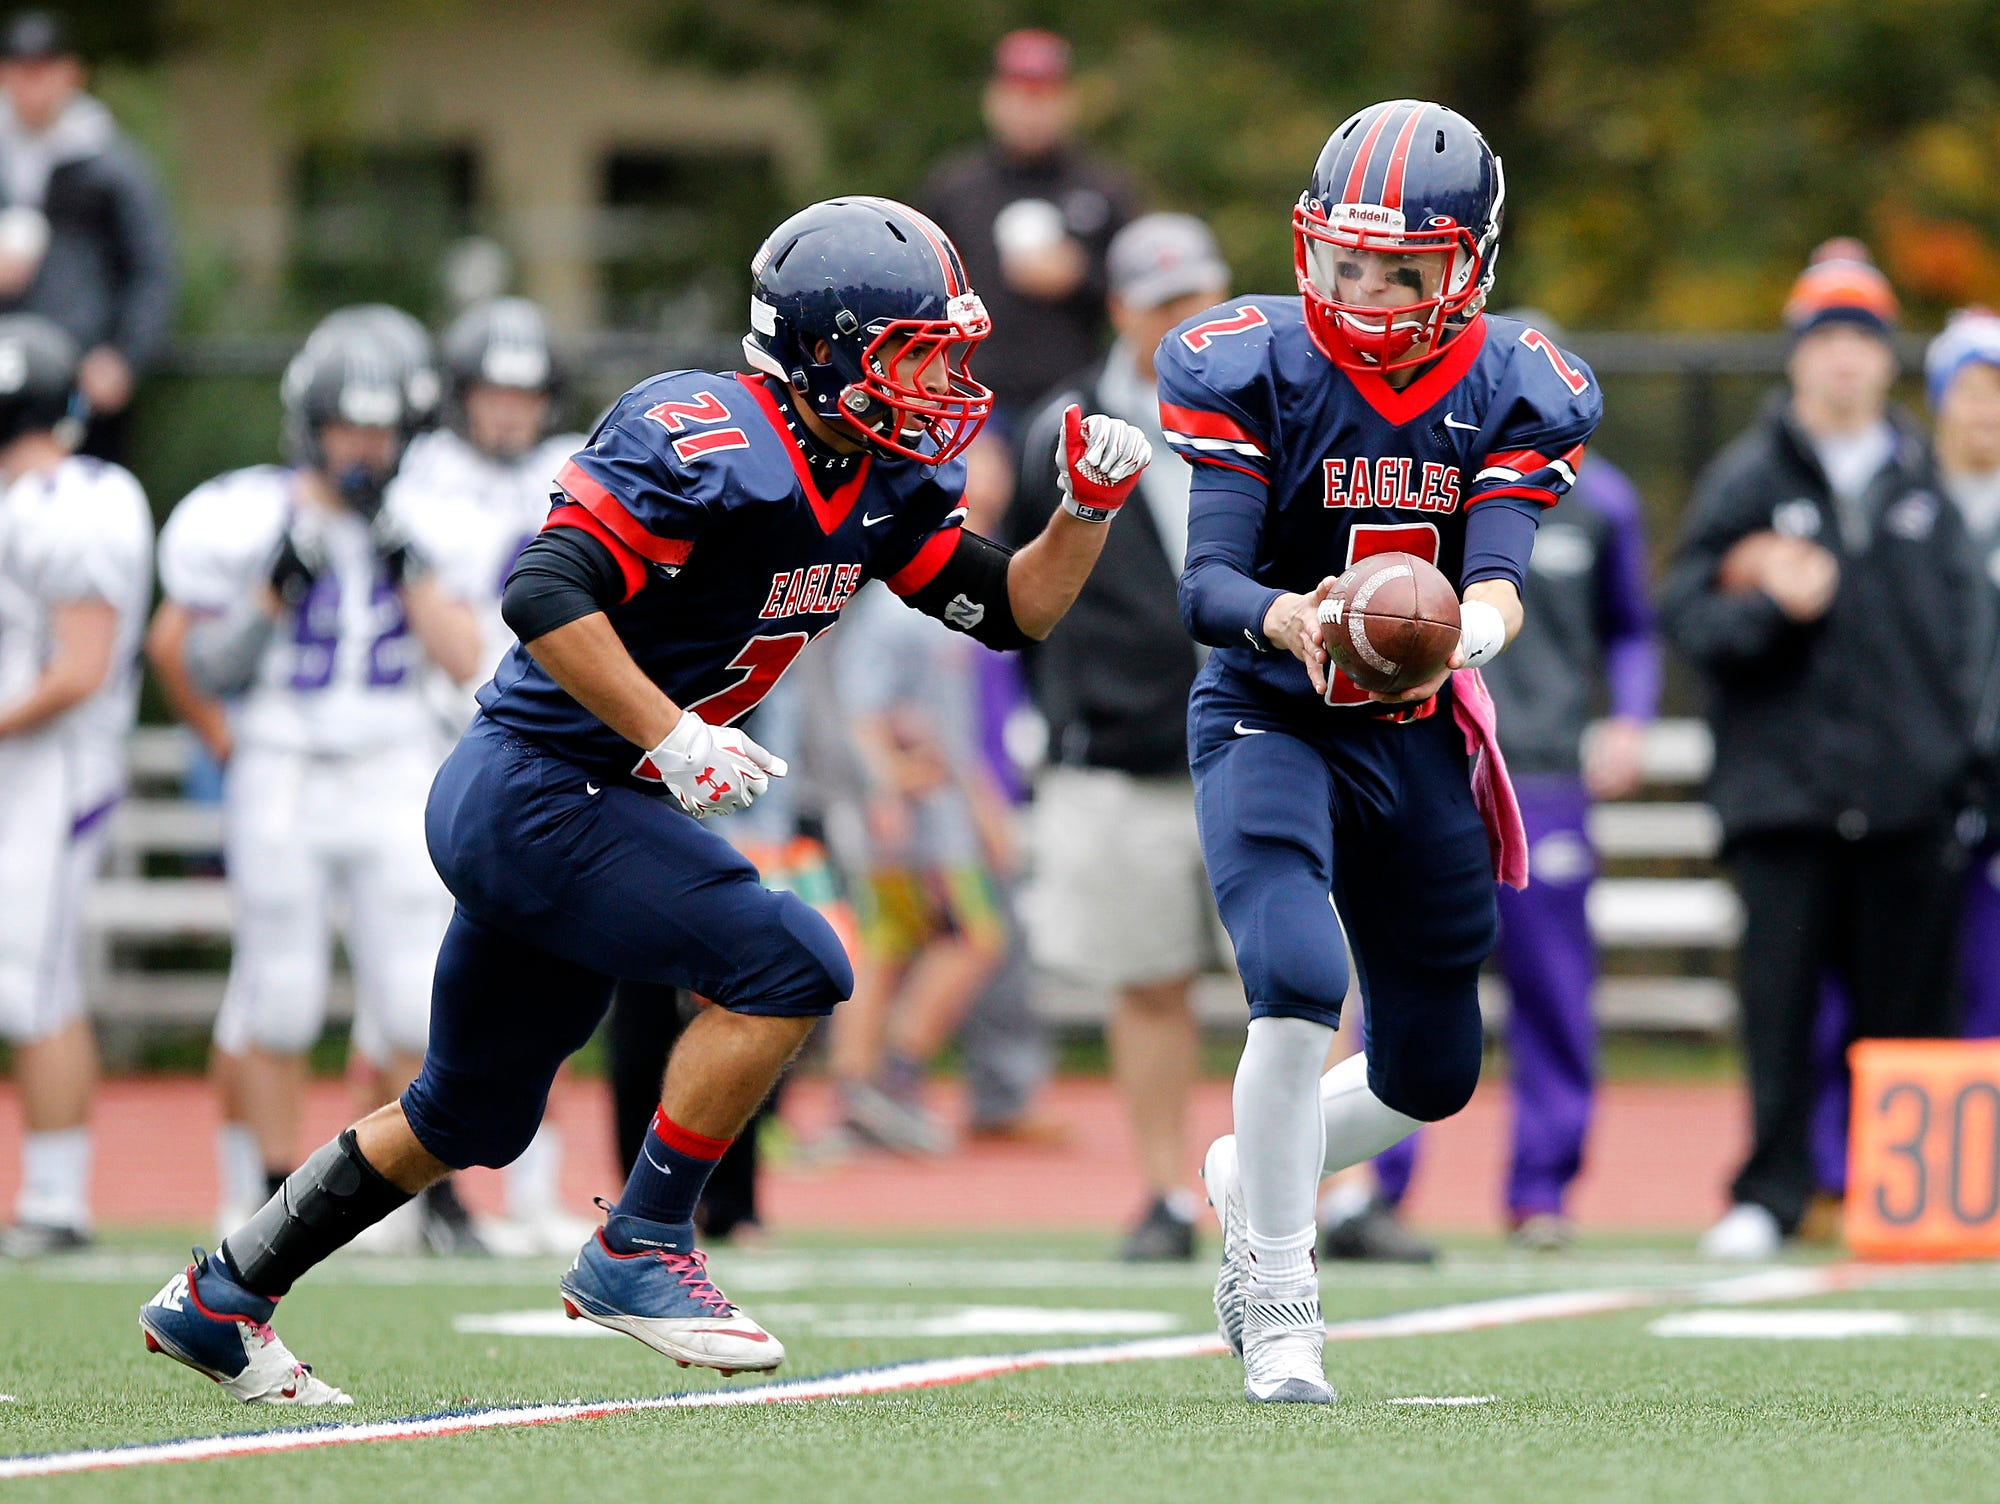 Eastchester quarterback John Archidiacono (2) hands off to Michael Cesarini (21) during a varsity football game against John Jay Cross River at Eastchester High School on Saturday, Oct. 24, 2015.